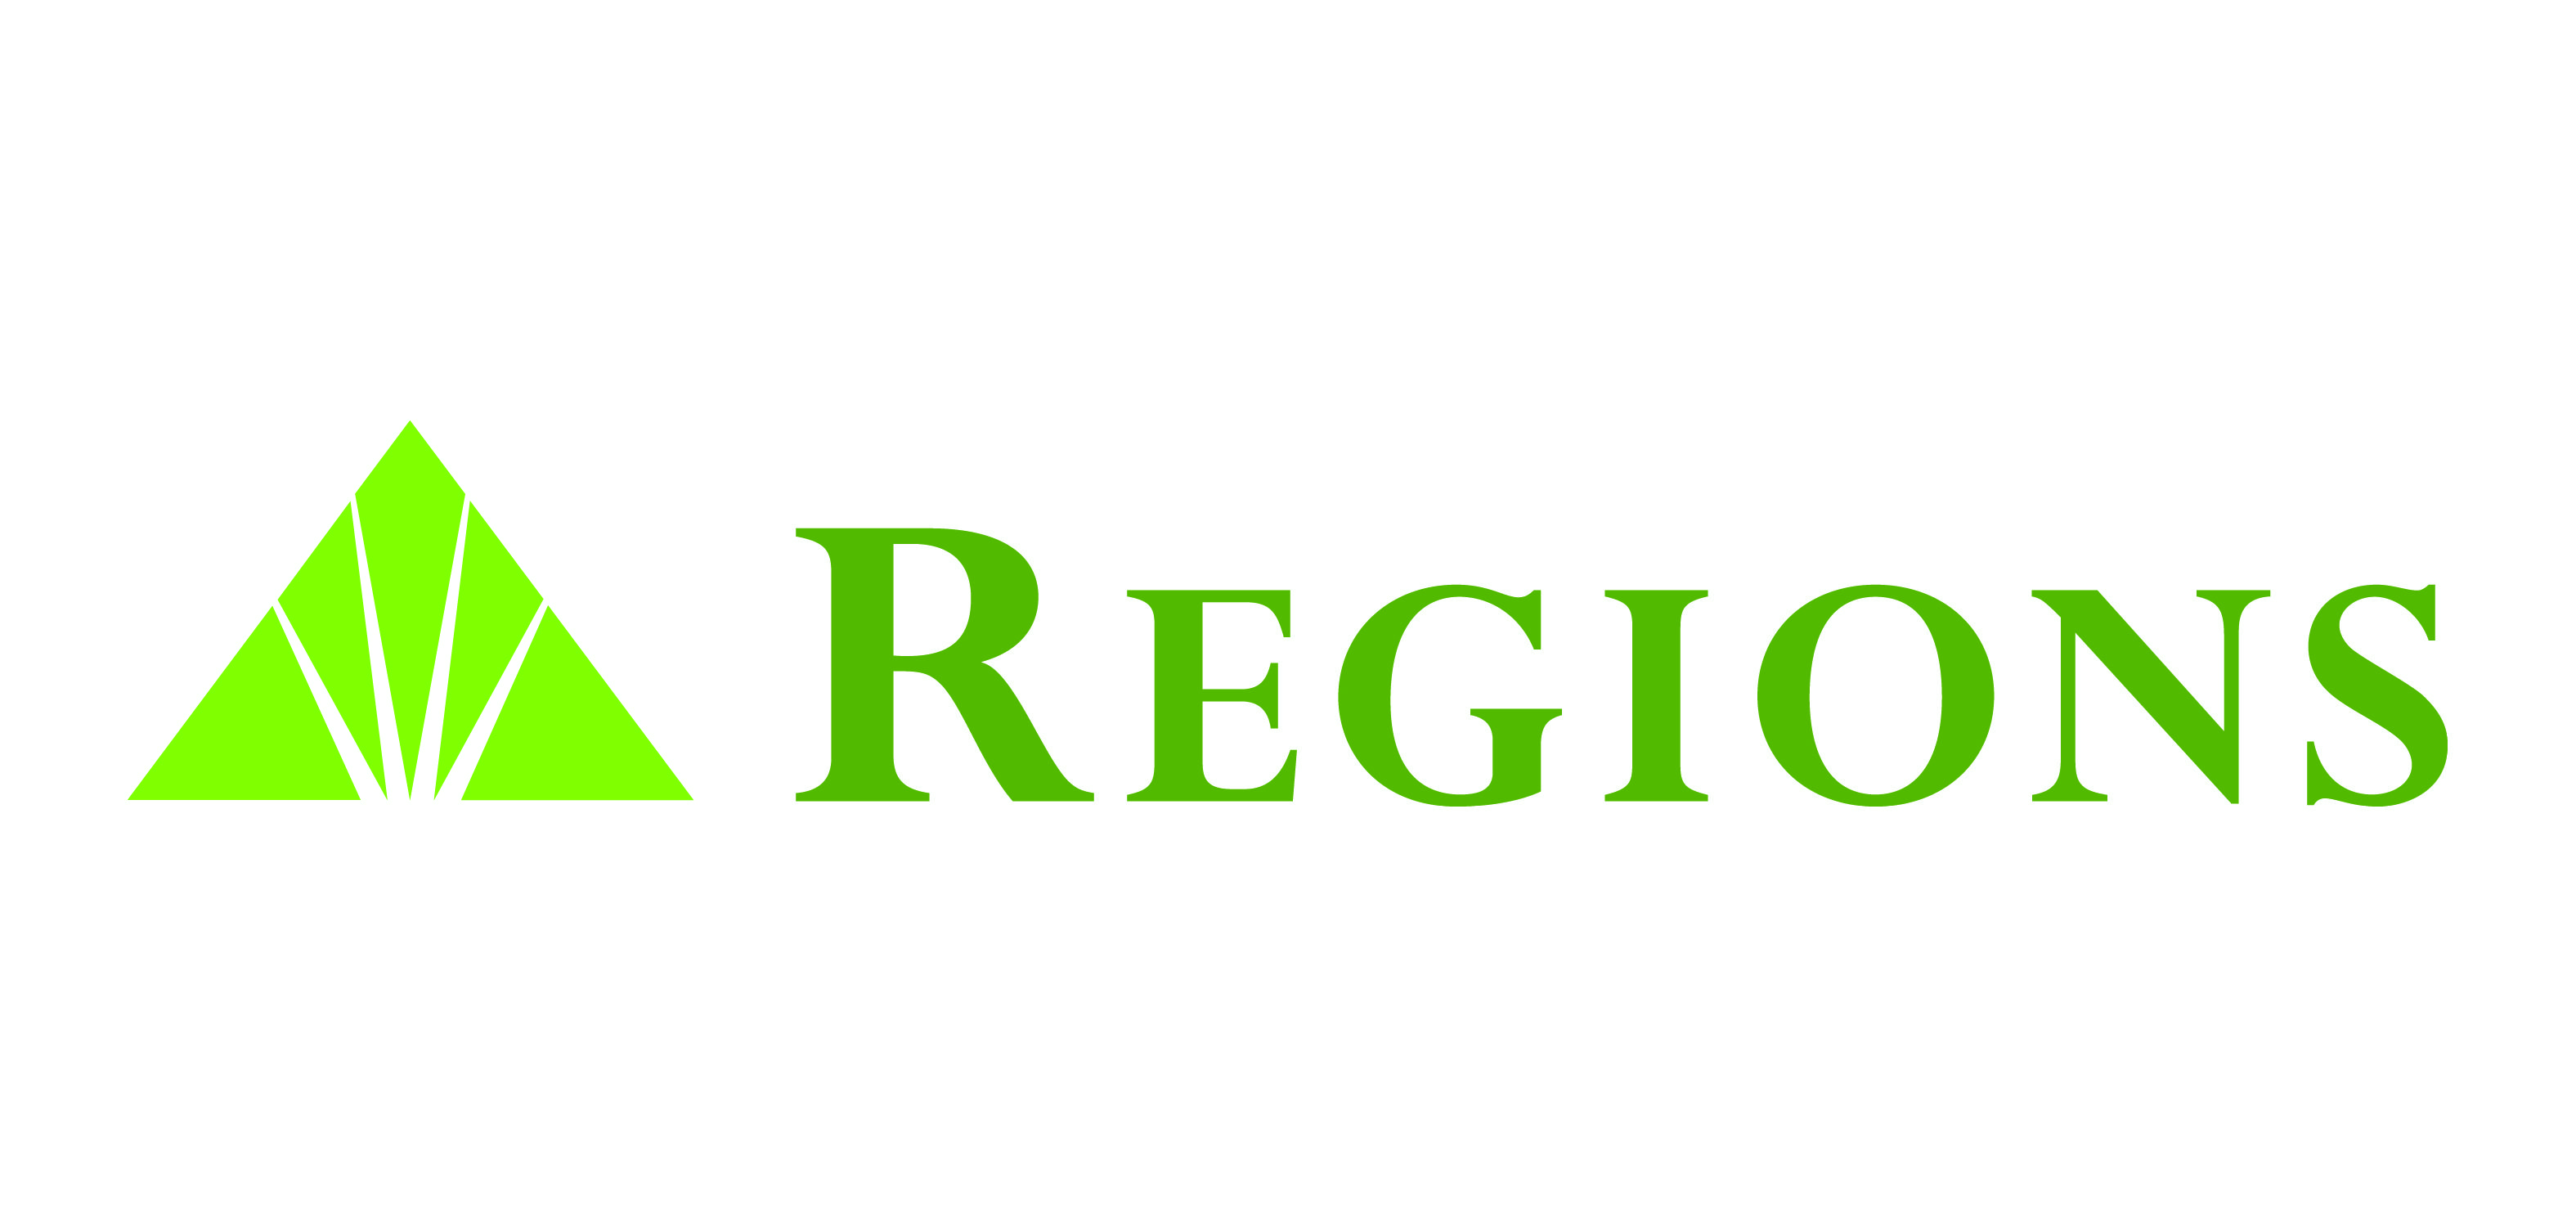 The official logo for Regions Bank, a pyramid  (with Amen